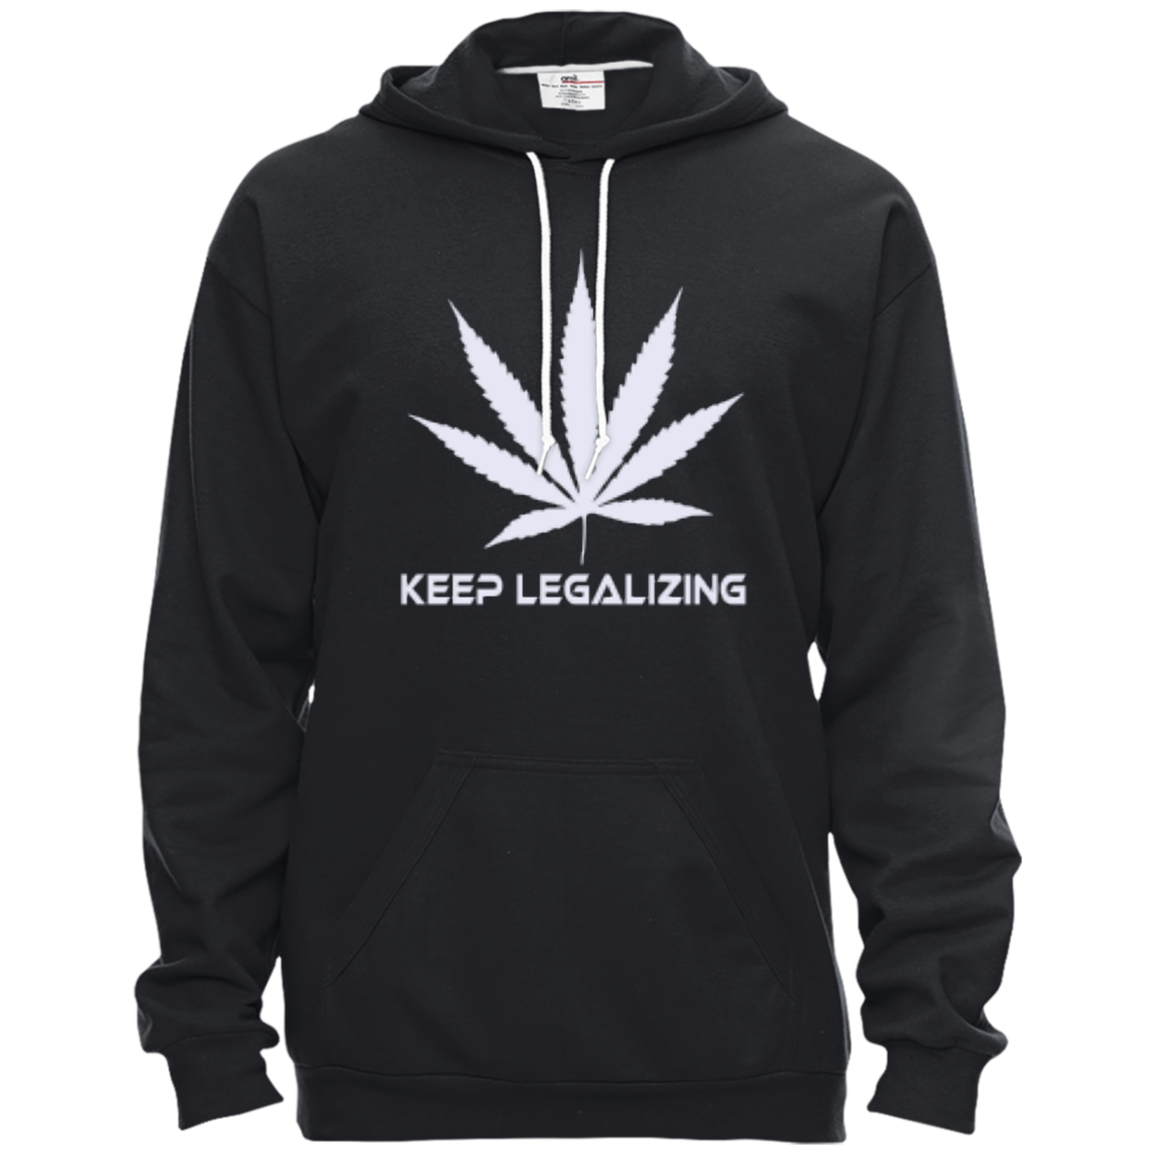 KEEP LEGALIZING - Pullover Hooded Fleece - Herban Apparel